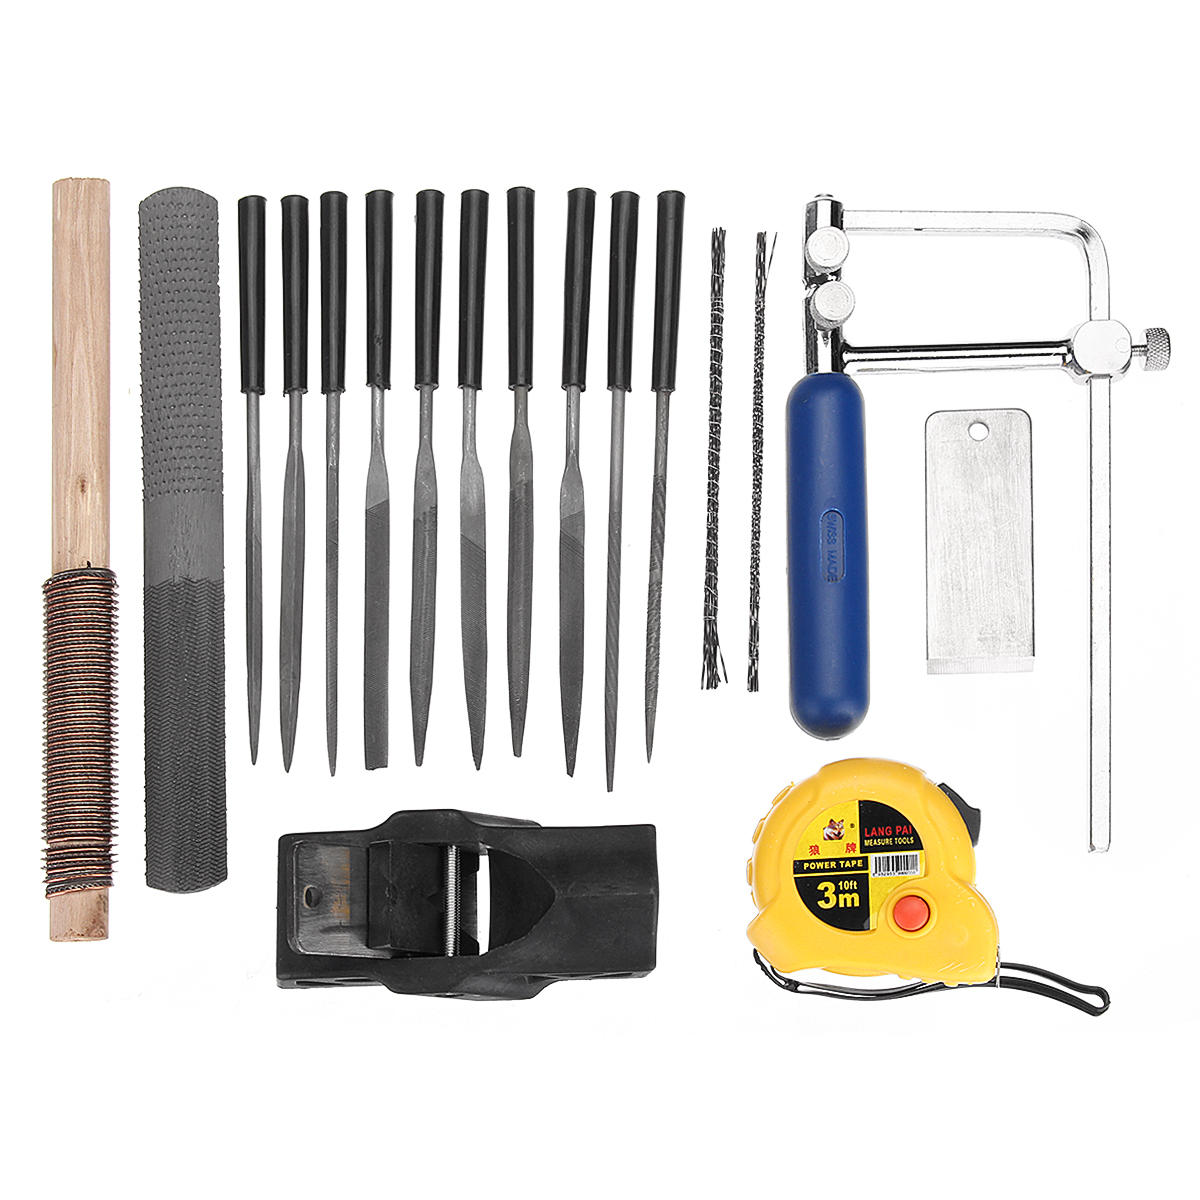 Nuovo 40pcs Woodworking Wood Carving Tool Kit Legno Curva Saw Planer